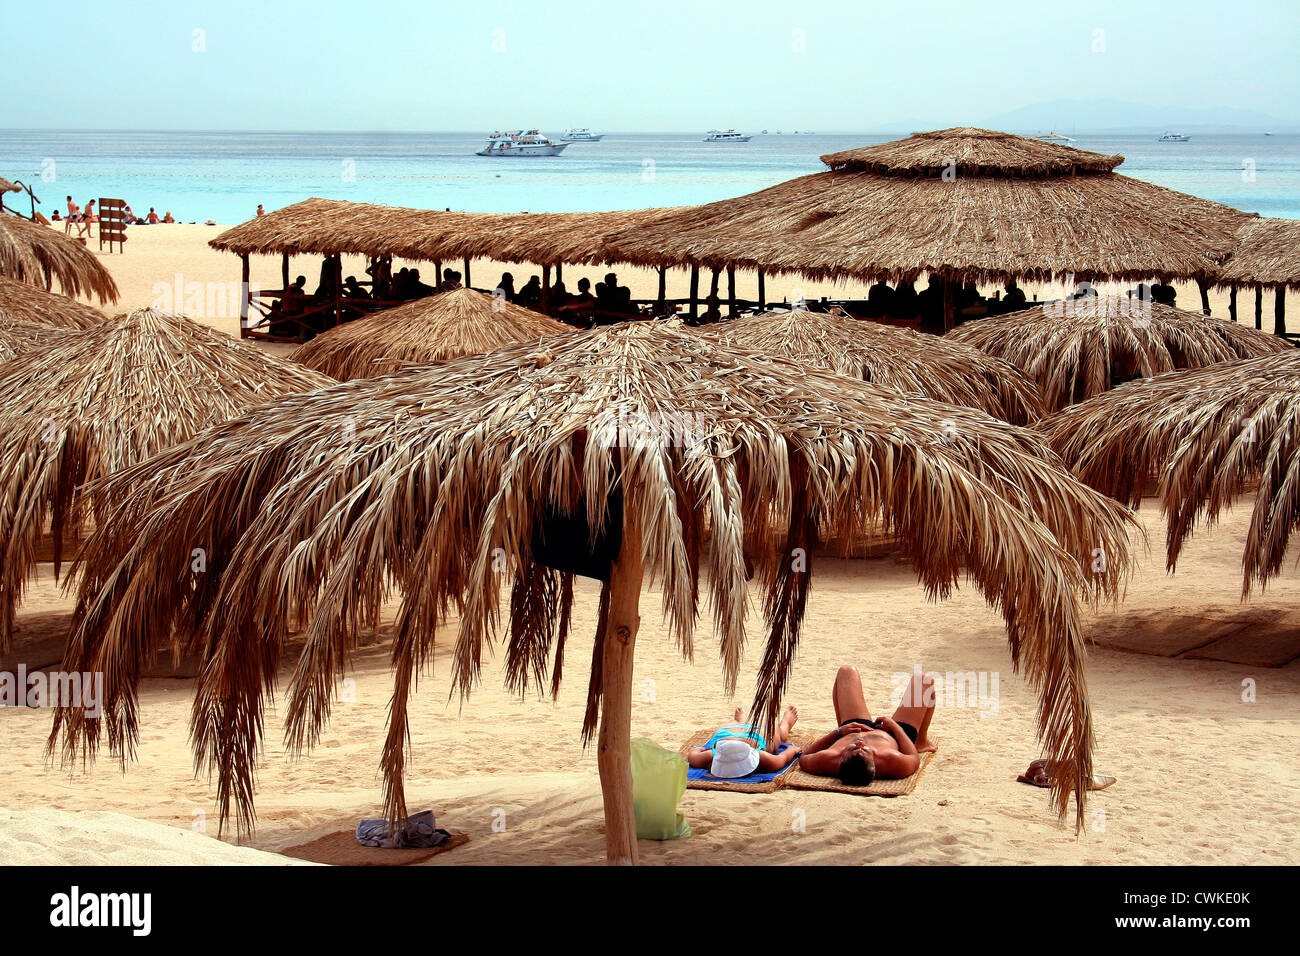 Beach in Egypt - Stock Image